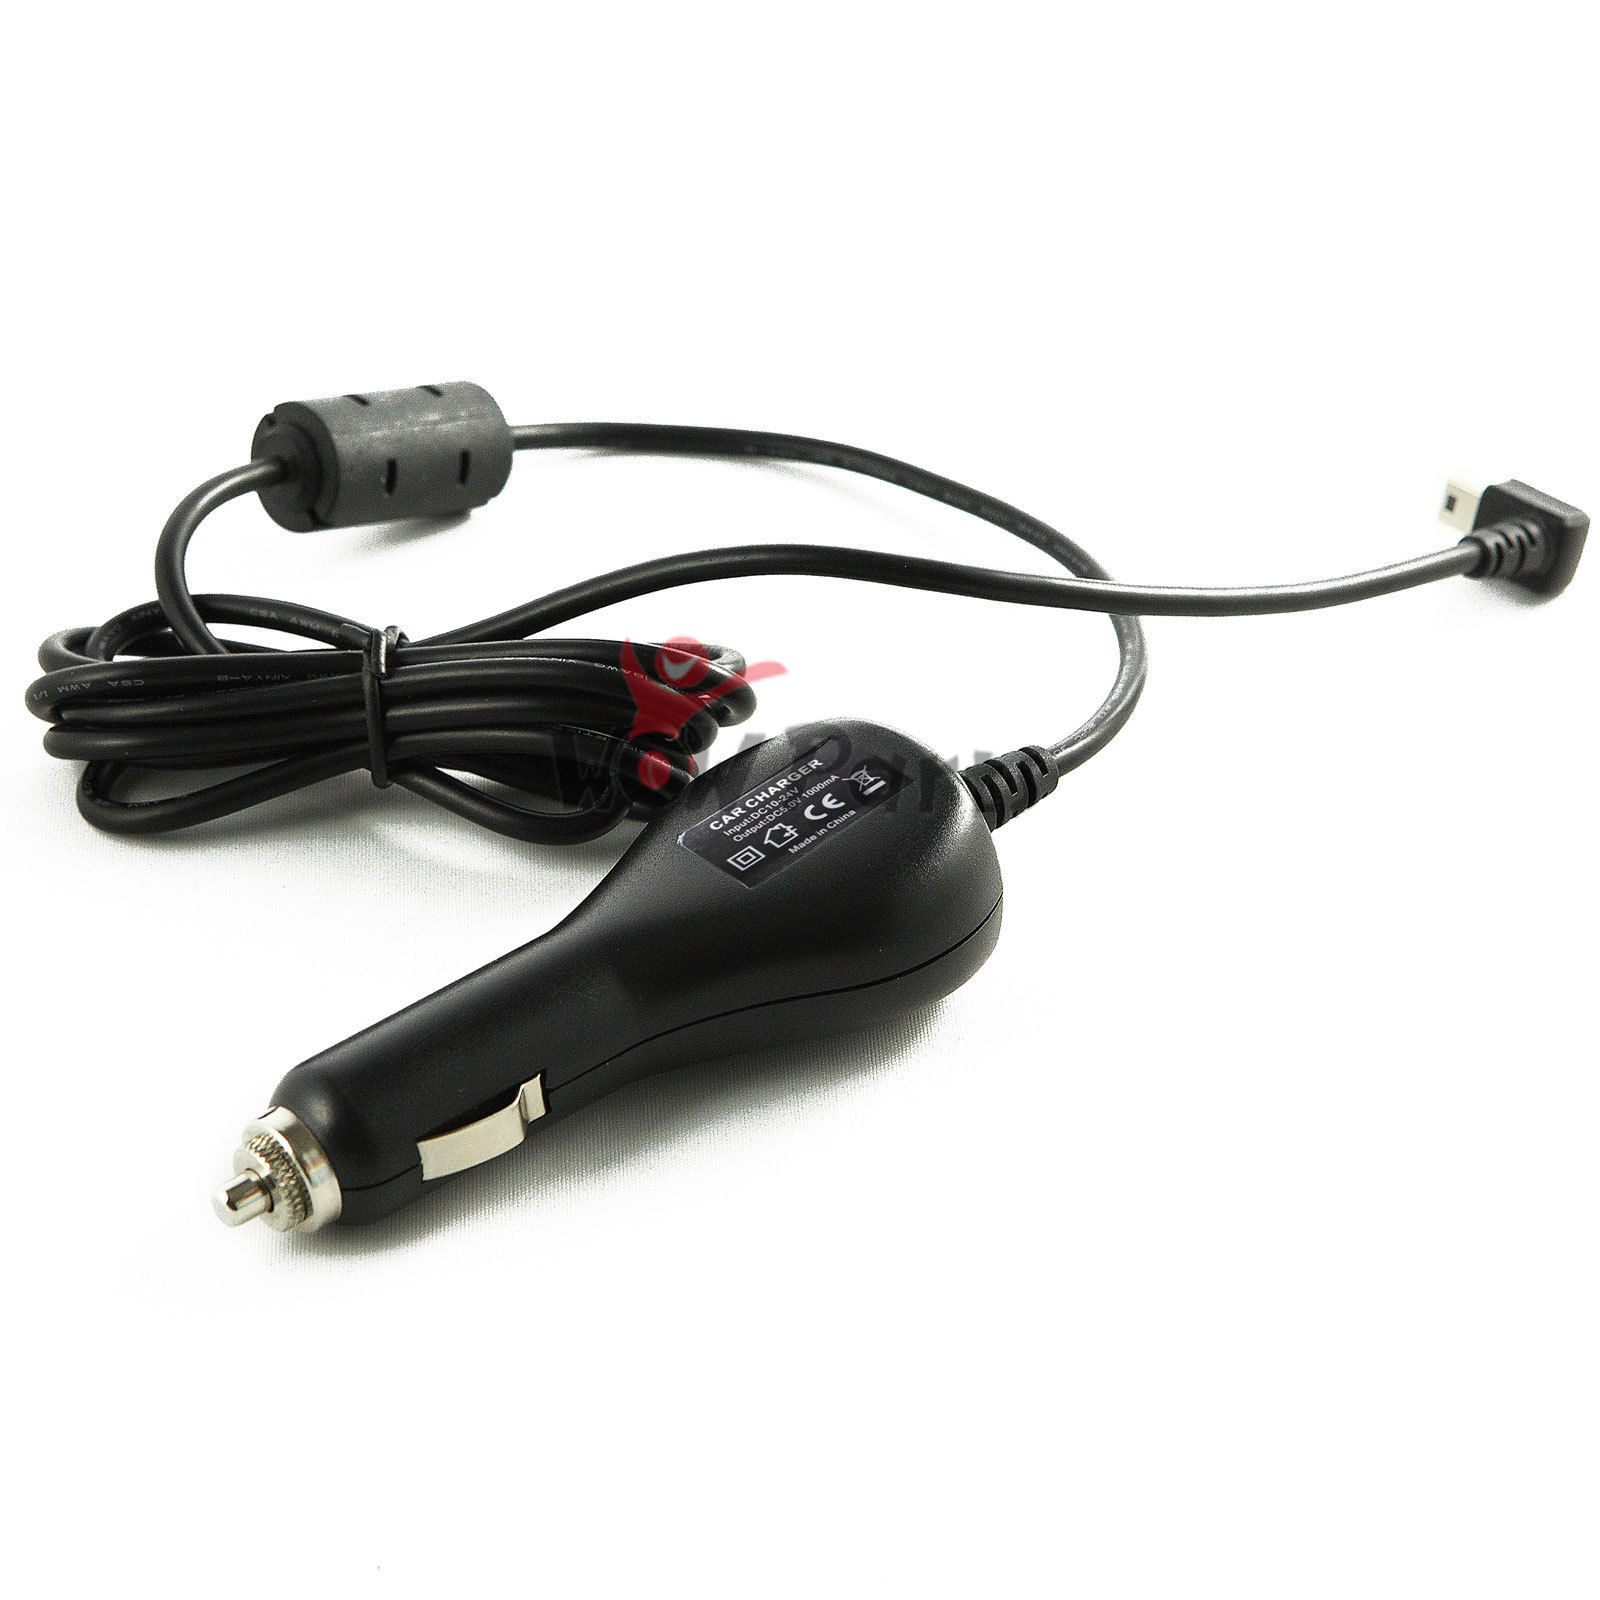 TSV Car Vehicle Power Charger Adapter Cord Cable For Garmin GPS Nuvi 255 260 270W 1A